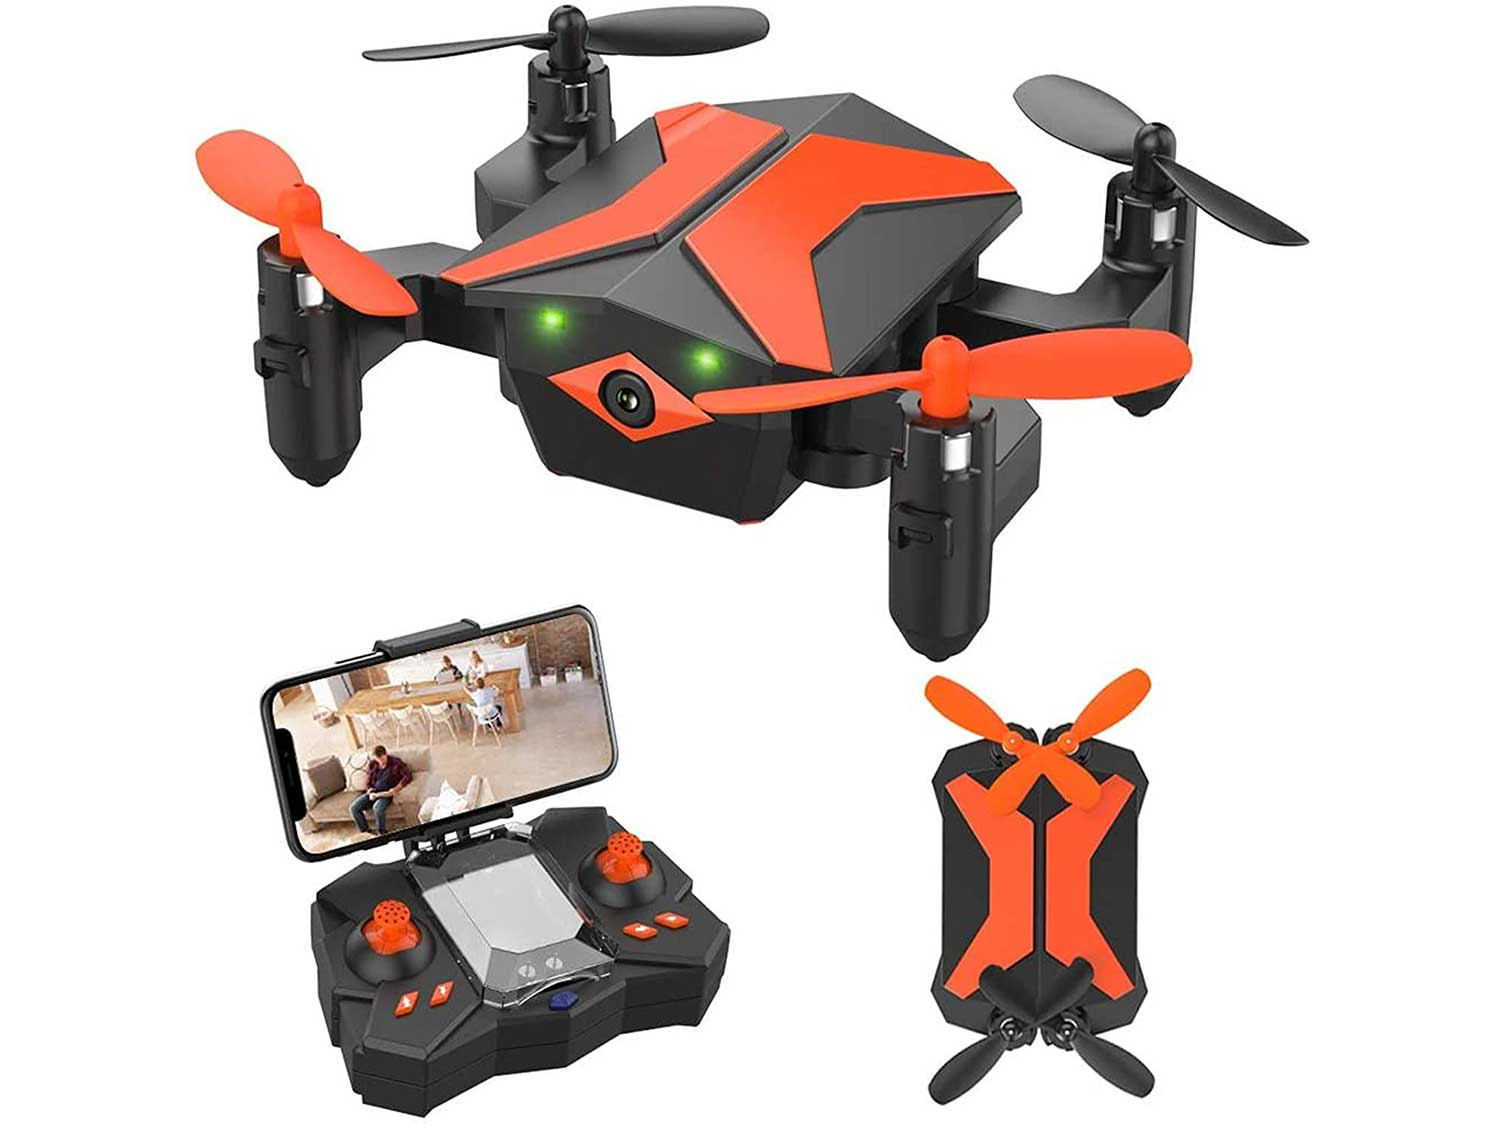 ATTOP Drone for Kids Drones with Camera for Kids and Beginners, AR Game Mode RC Mini Drone w App Gravity Voice Control Trajectory Flight Altitude Hold 360°Flip Kids Drone Foldable and Portable